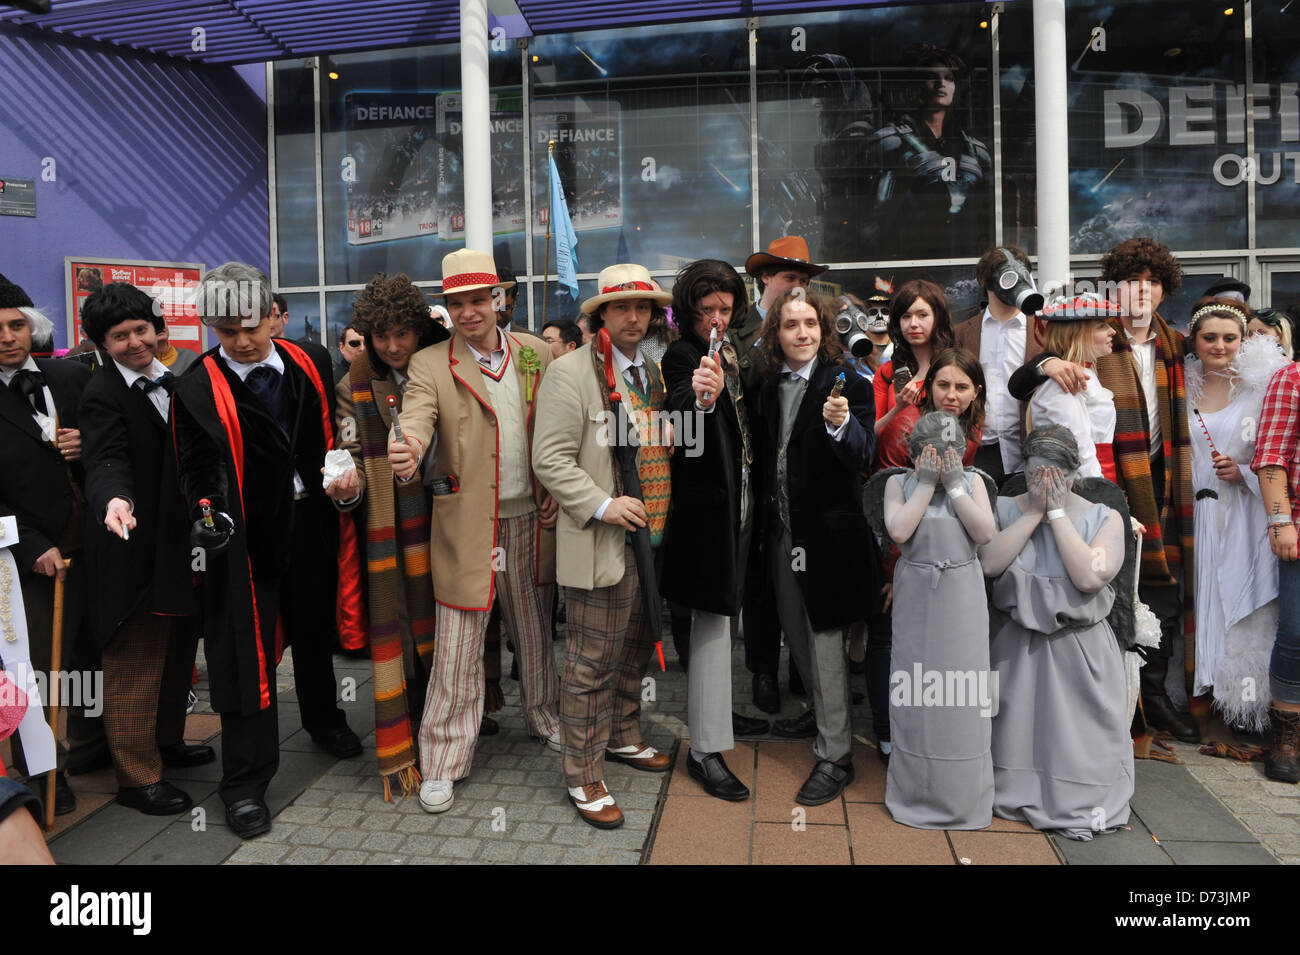 Stratford, London, UK. 28th April 2013. Characters and a selection of Doctor Who, at the costume parade. The Sci - Stock Image